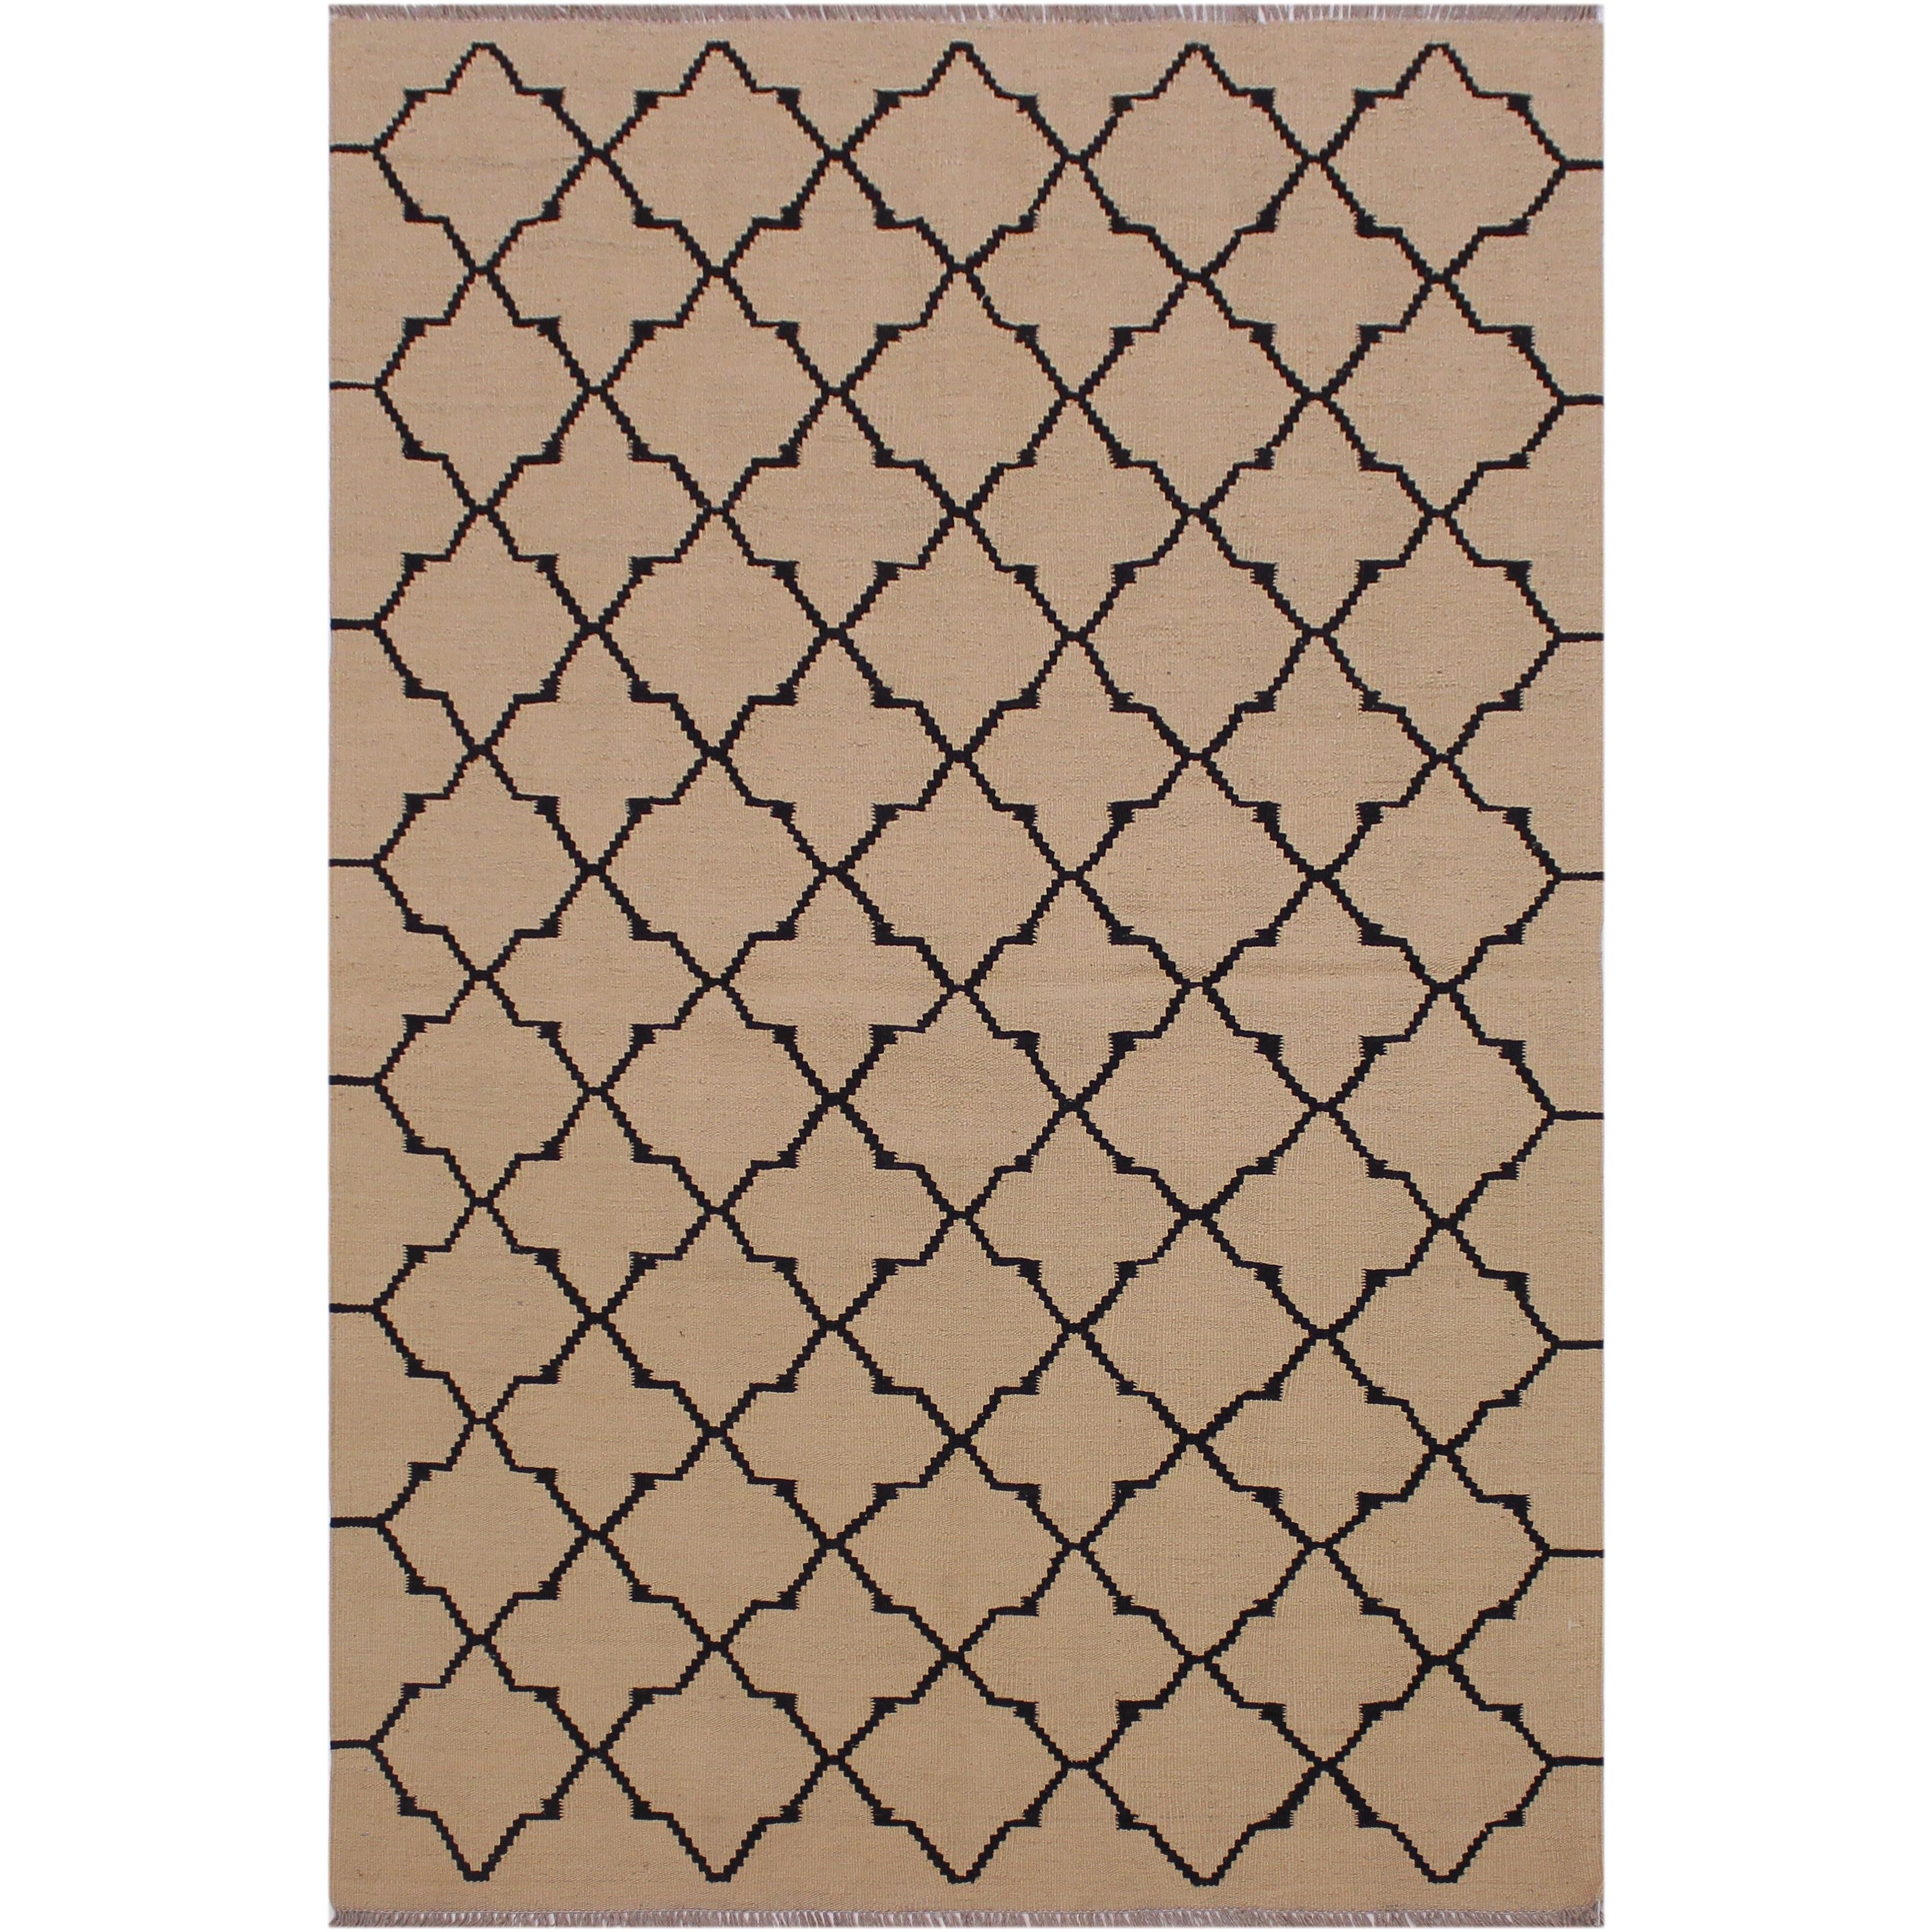 Kilim Margurit Tan Black Hand Woven Wool Rug 4 0 X 6 4 4 Ft 0 In X 6 Ft 4 In